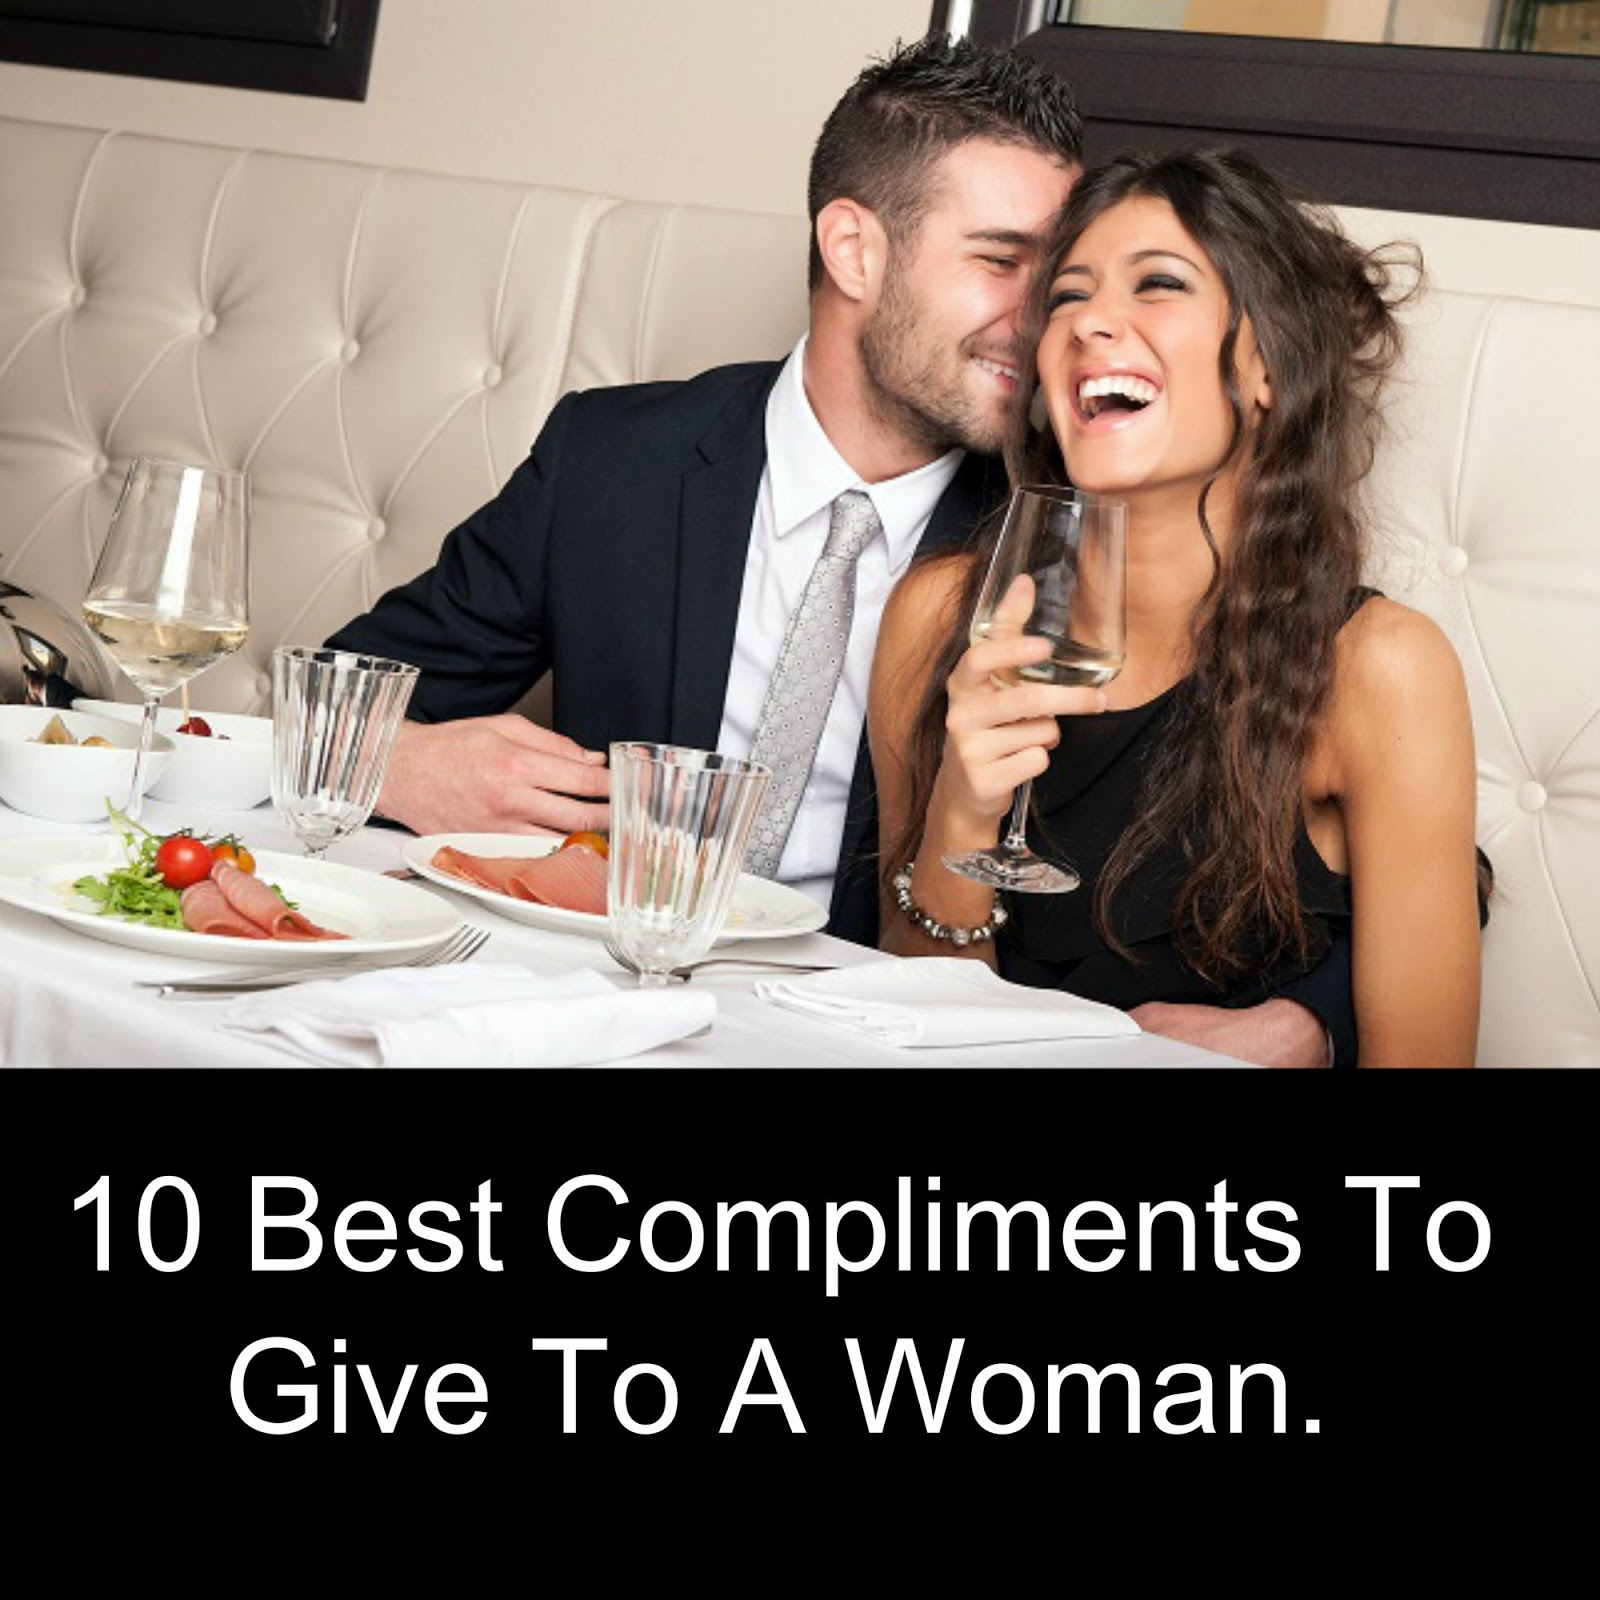 compliments to give a woman